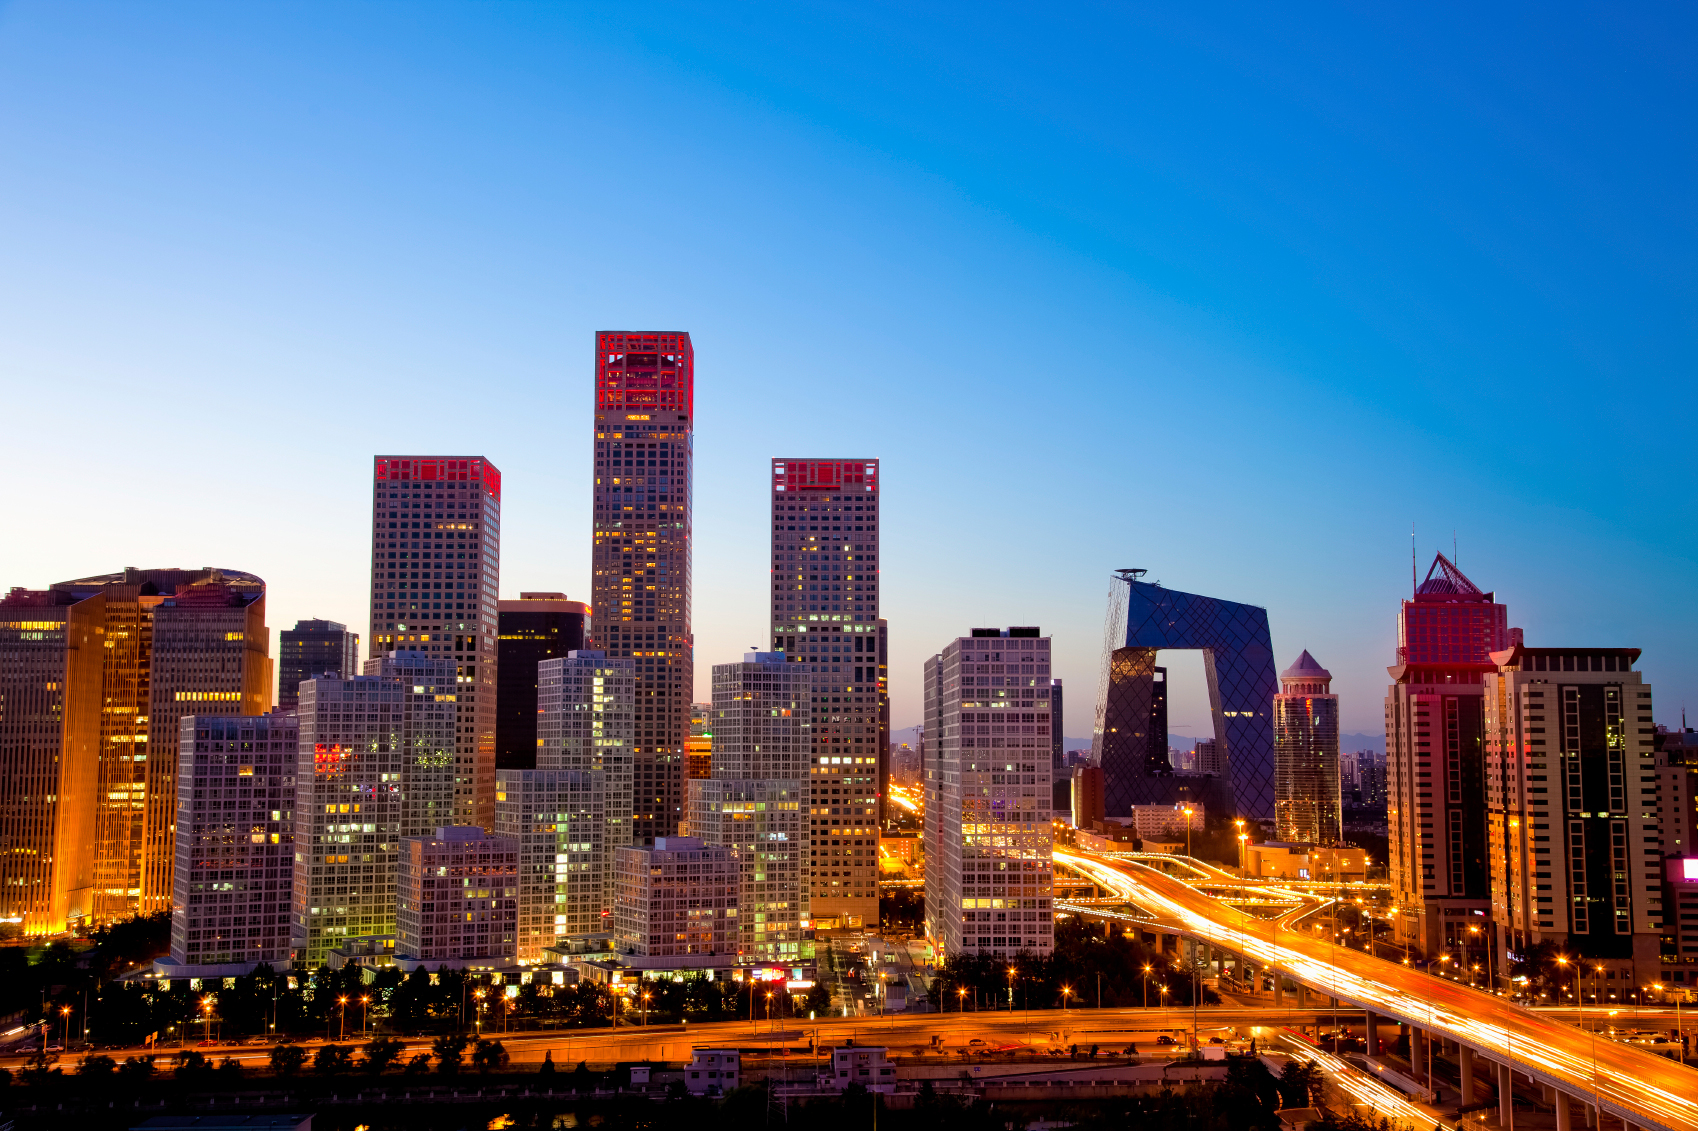 Beijing-Central-Business-District-mix-of-offices-and-apartments-china-asia-pacific